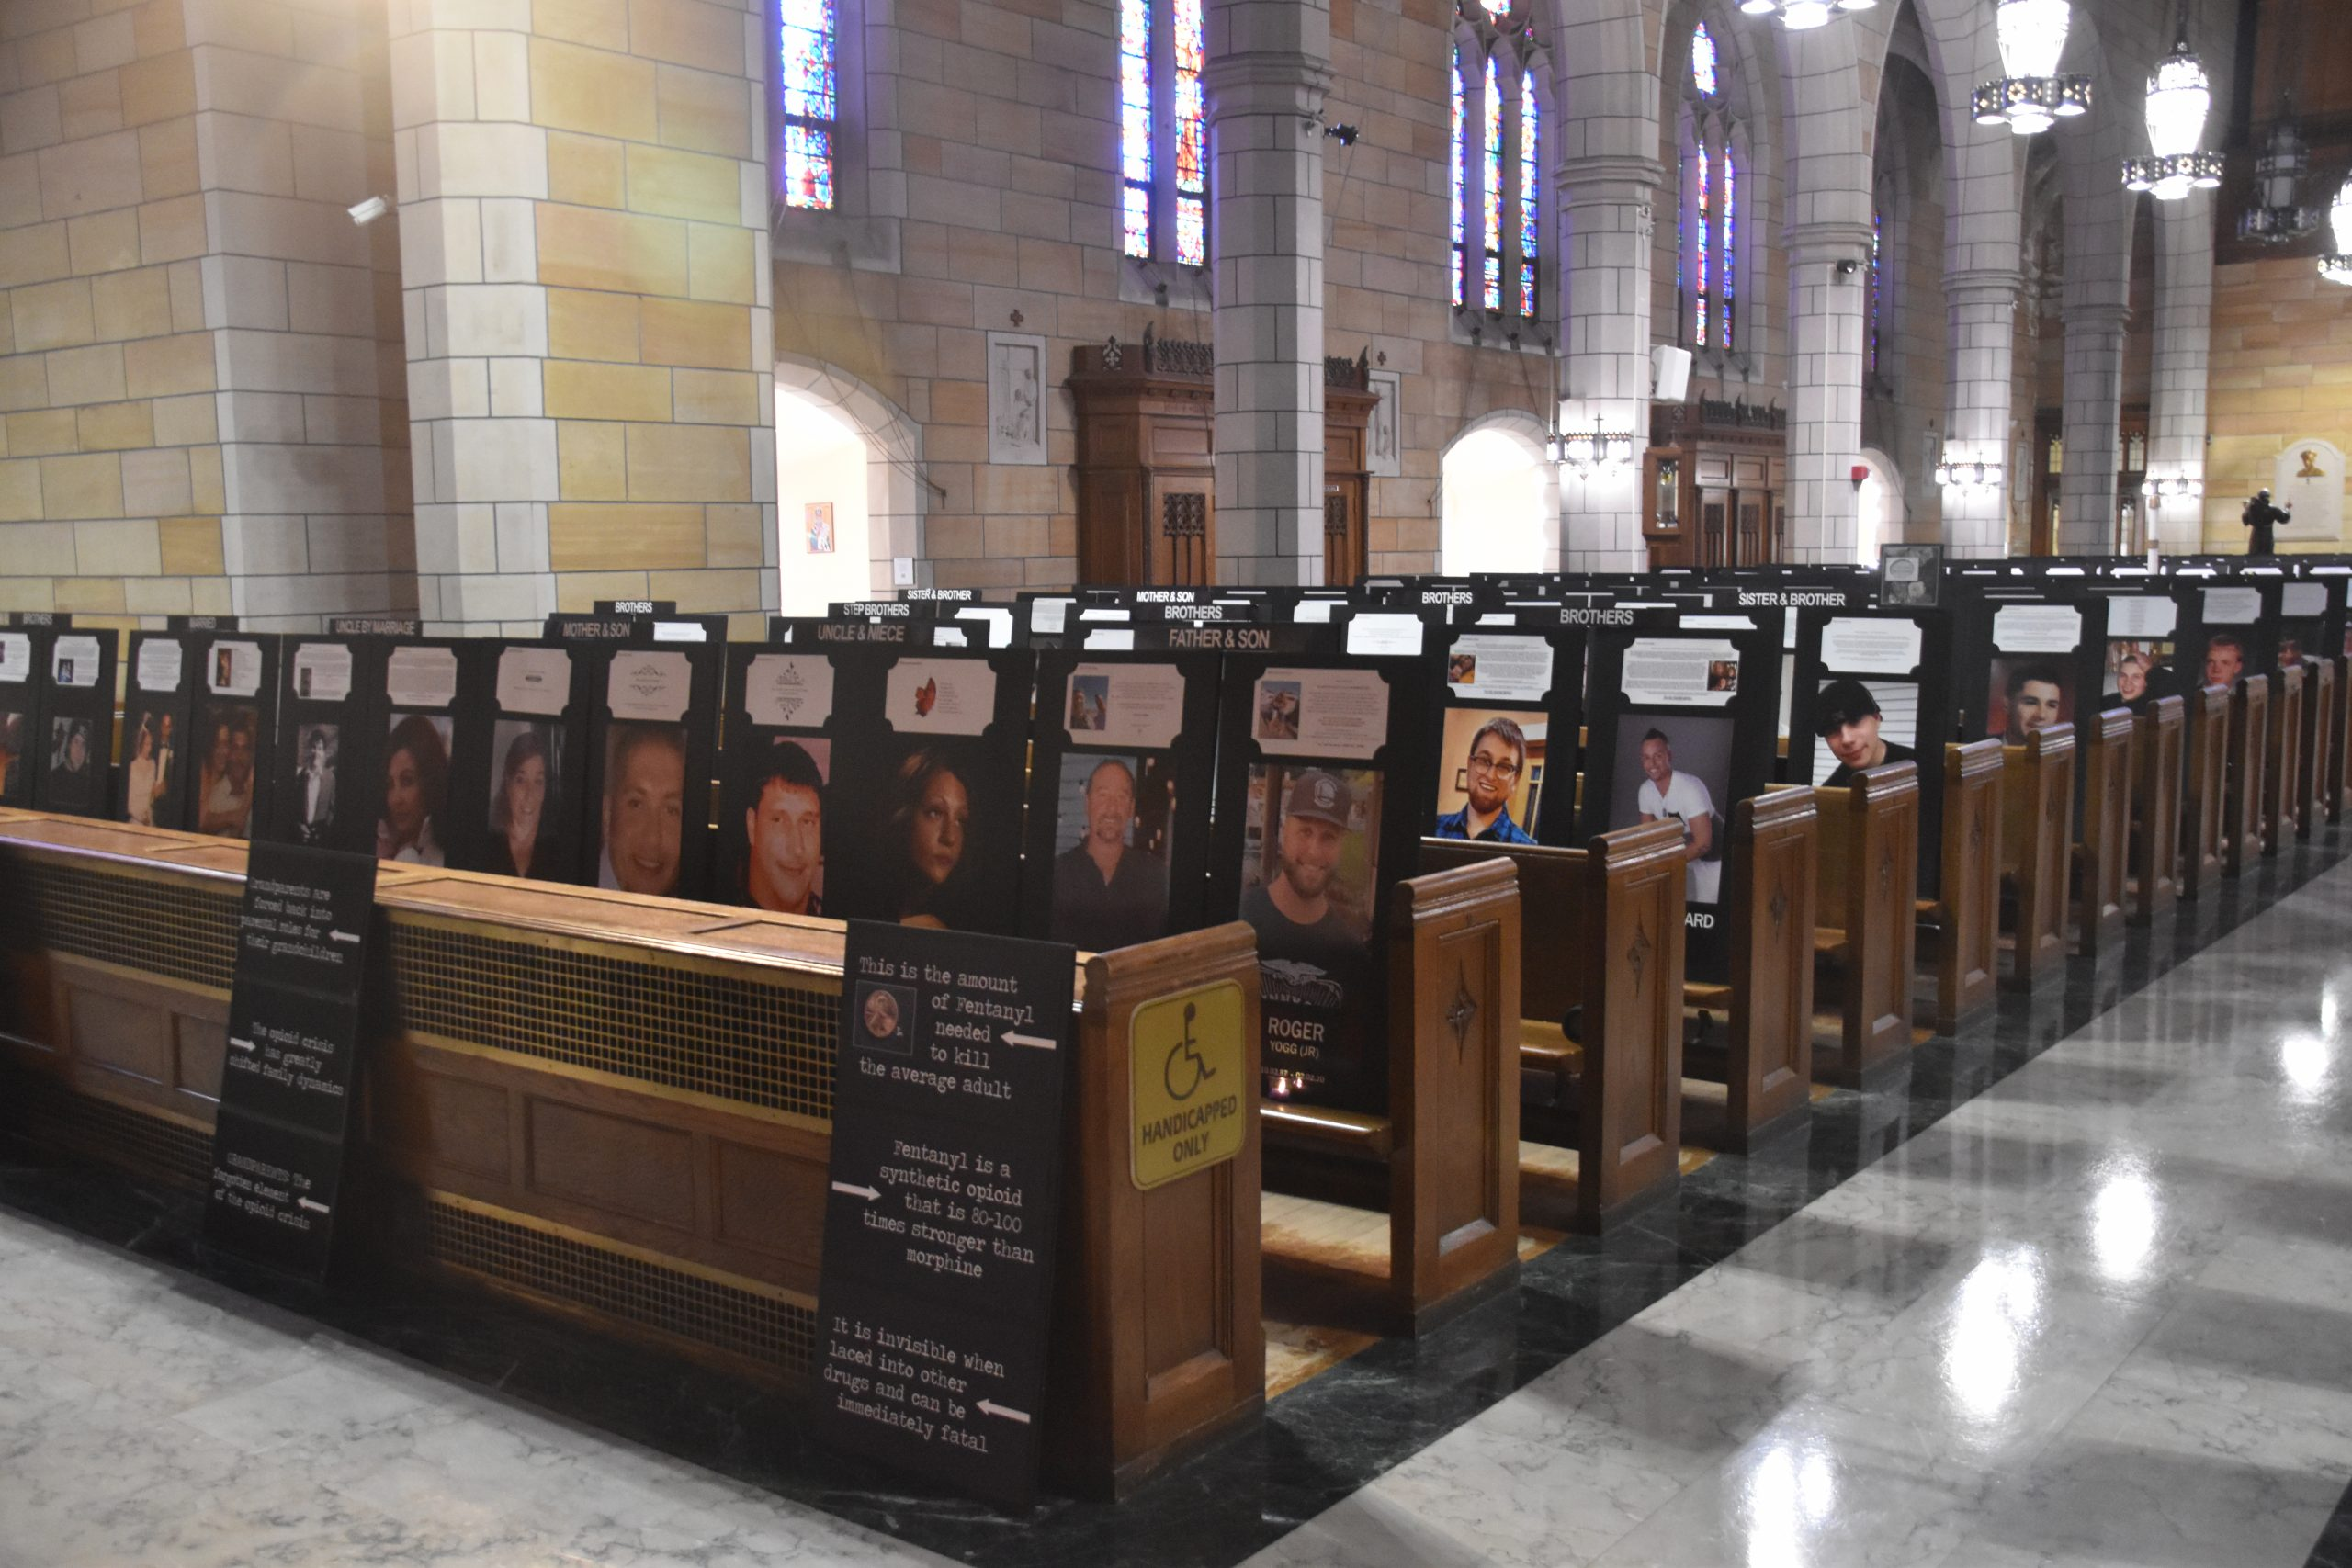 2021-09-30 BLACK POSTER ANGELS IN THE PEWS 9-30-2021_00013